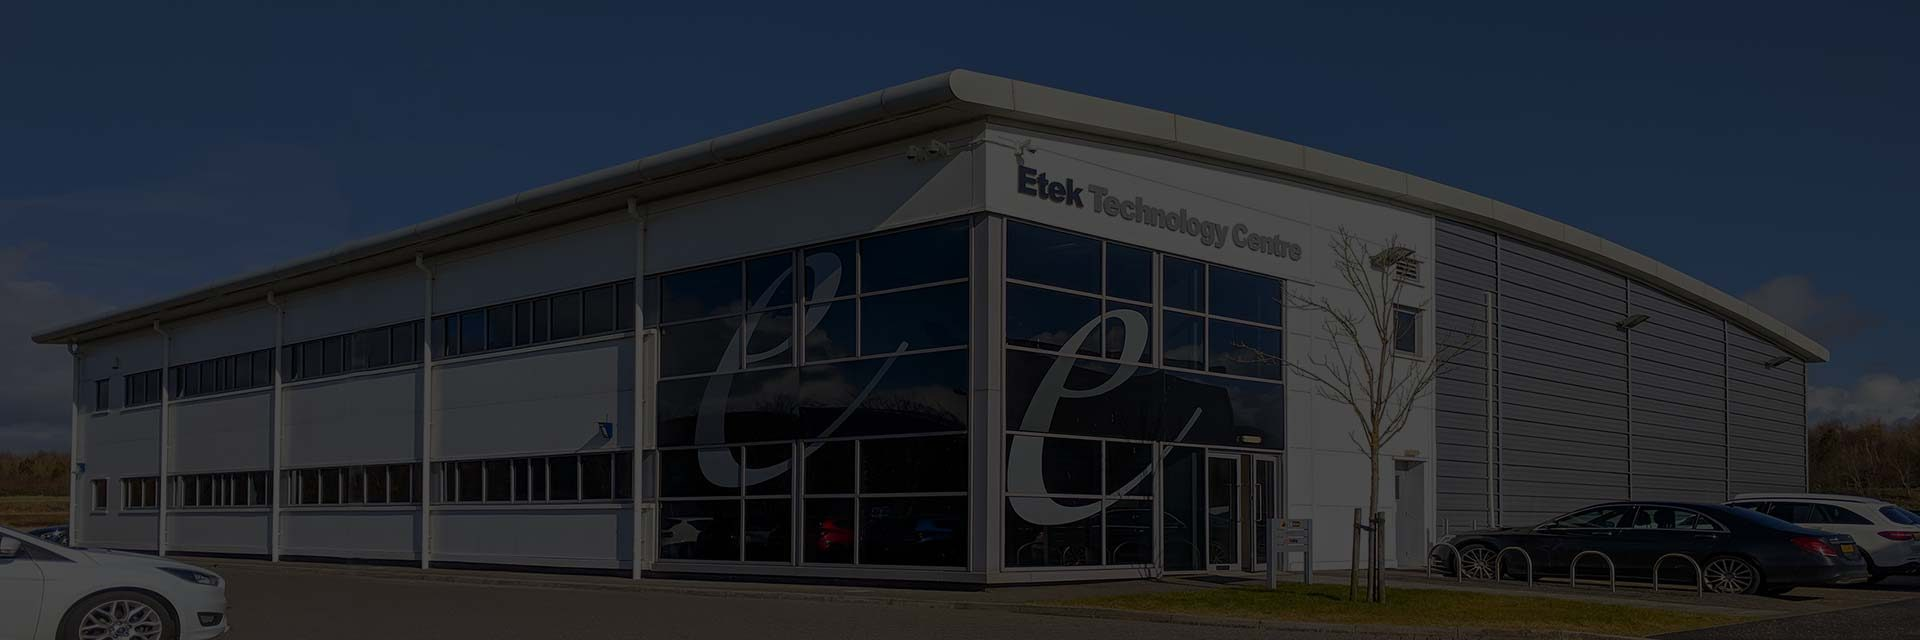 Etek Europe Technology Centre for Electronics Manufacturing Equipment